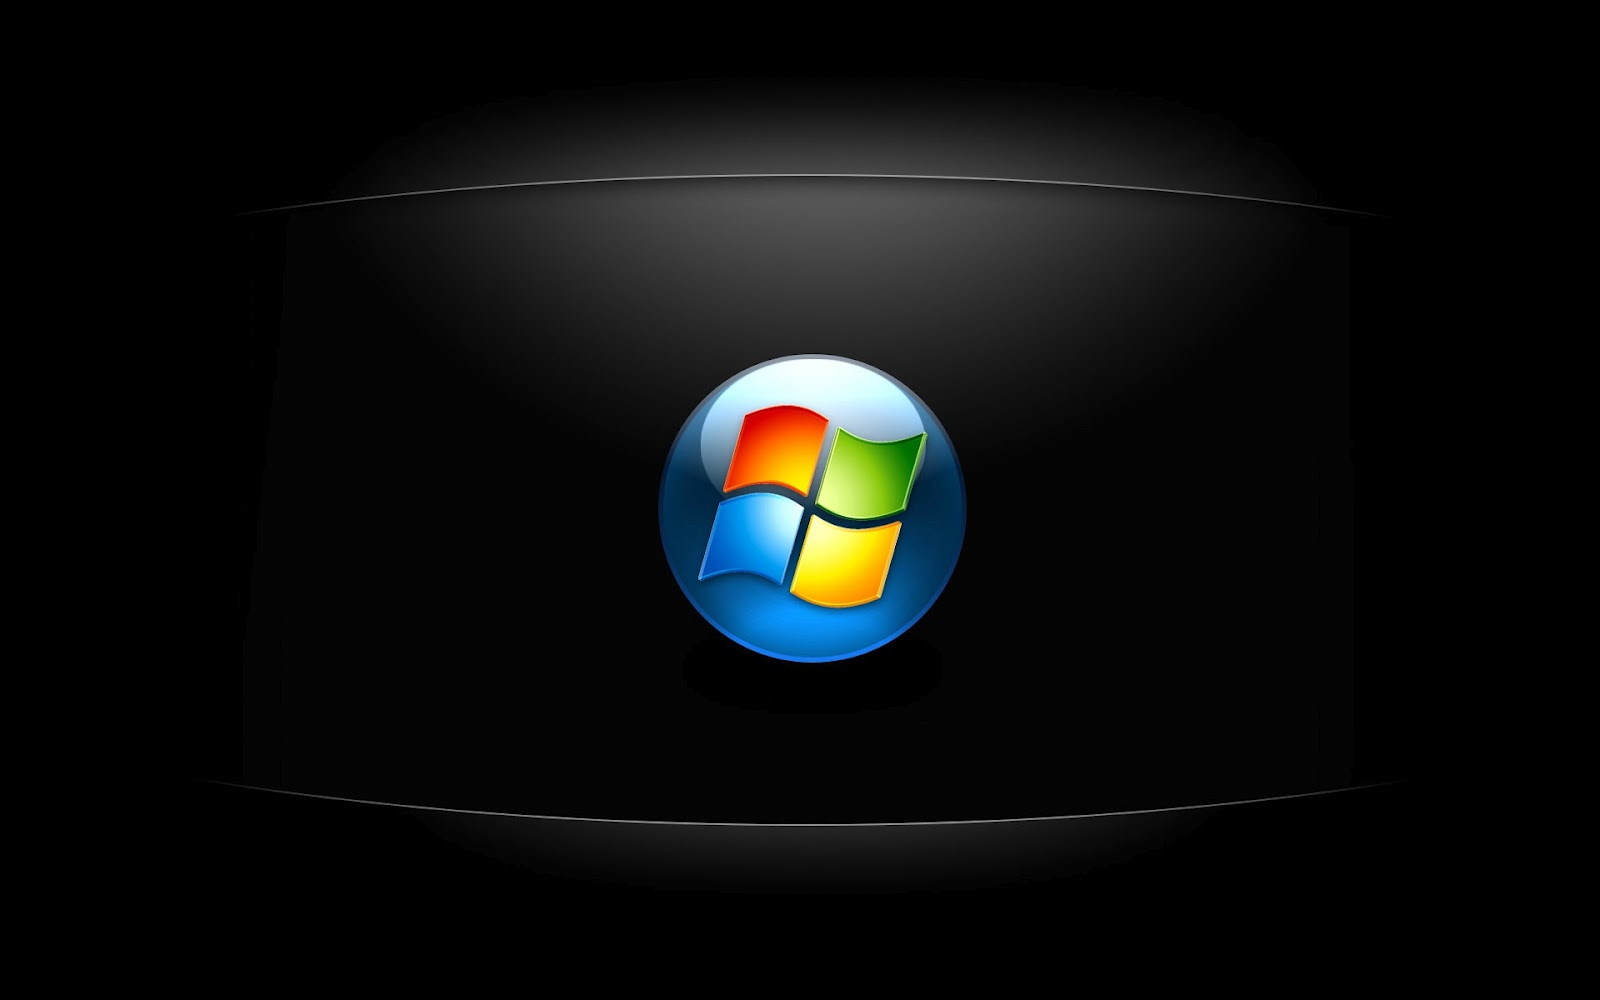 Windows 7 HD Wallpapers - a | HD Wallpapers